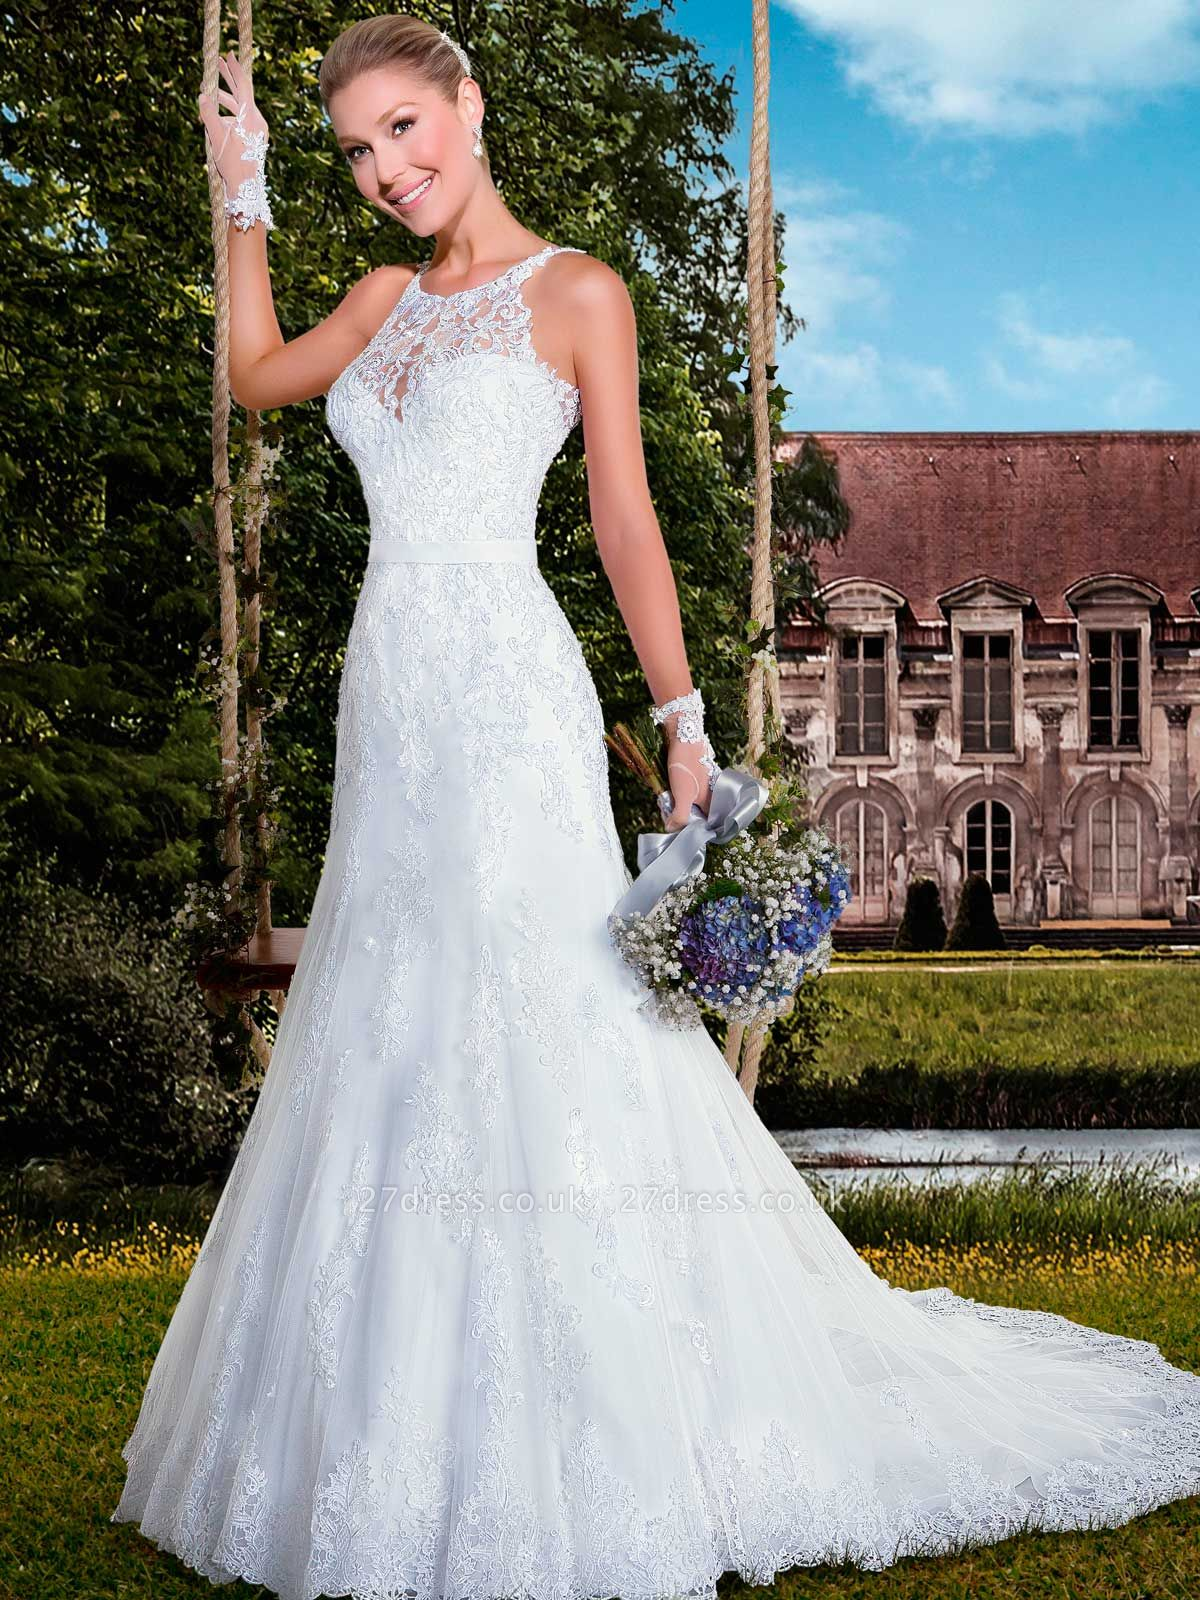 Delicate Illusion Sexy Mermaid Tulle Wedding Dress With Lace Appliques